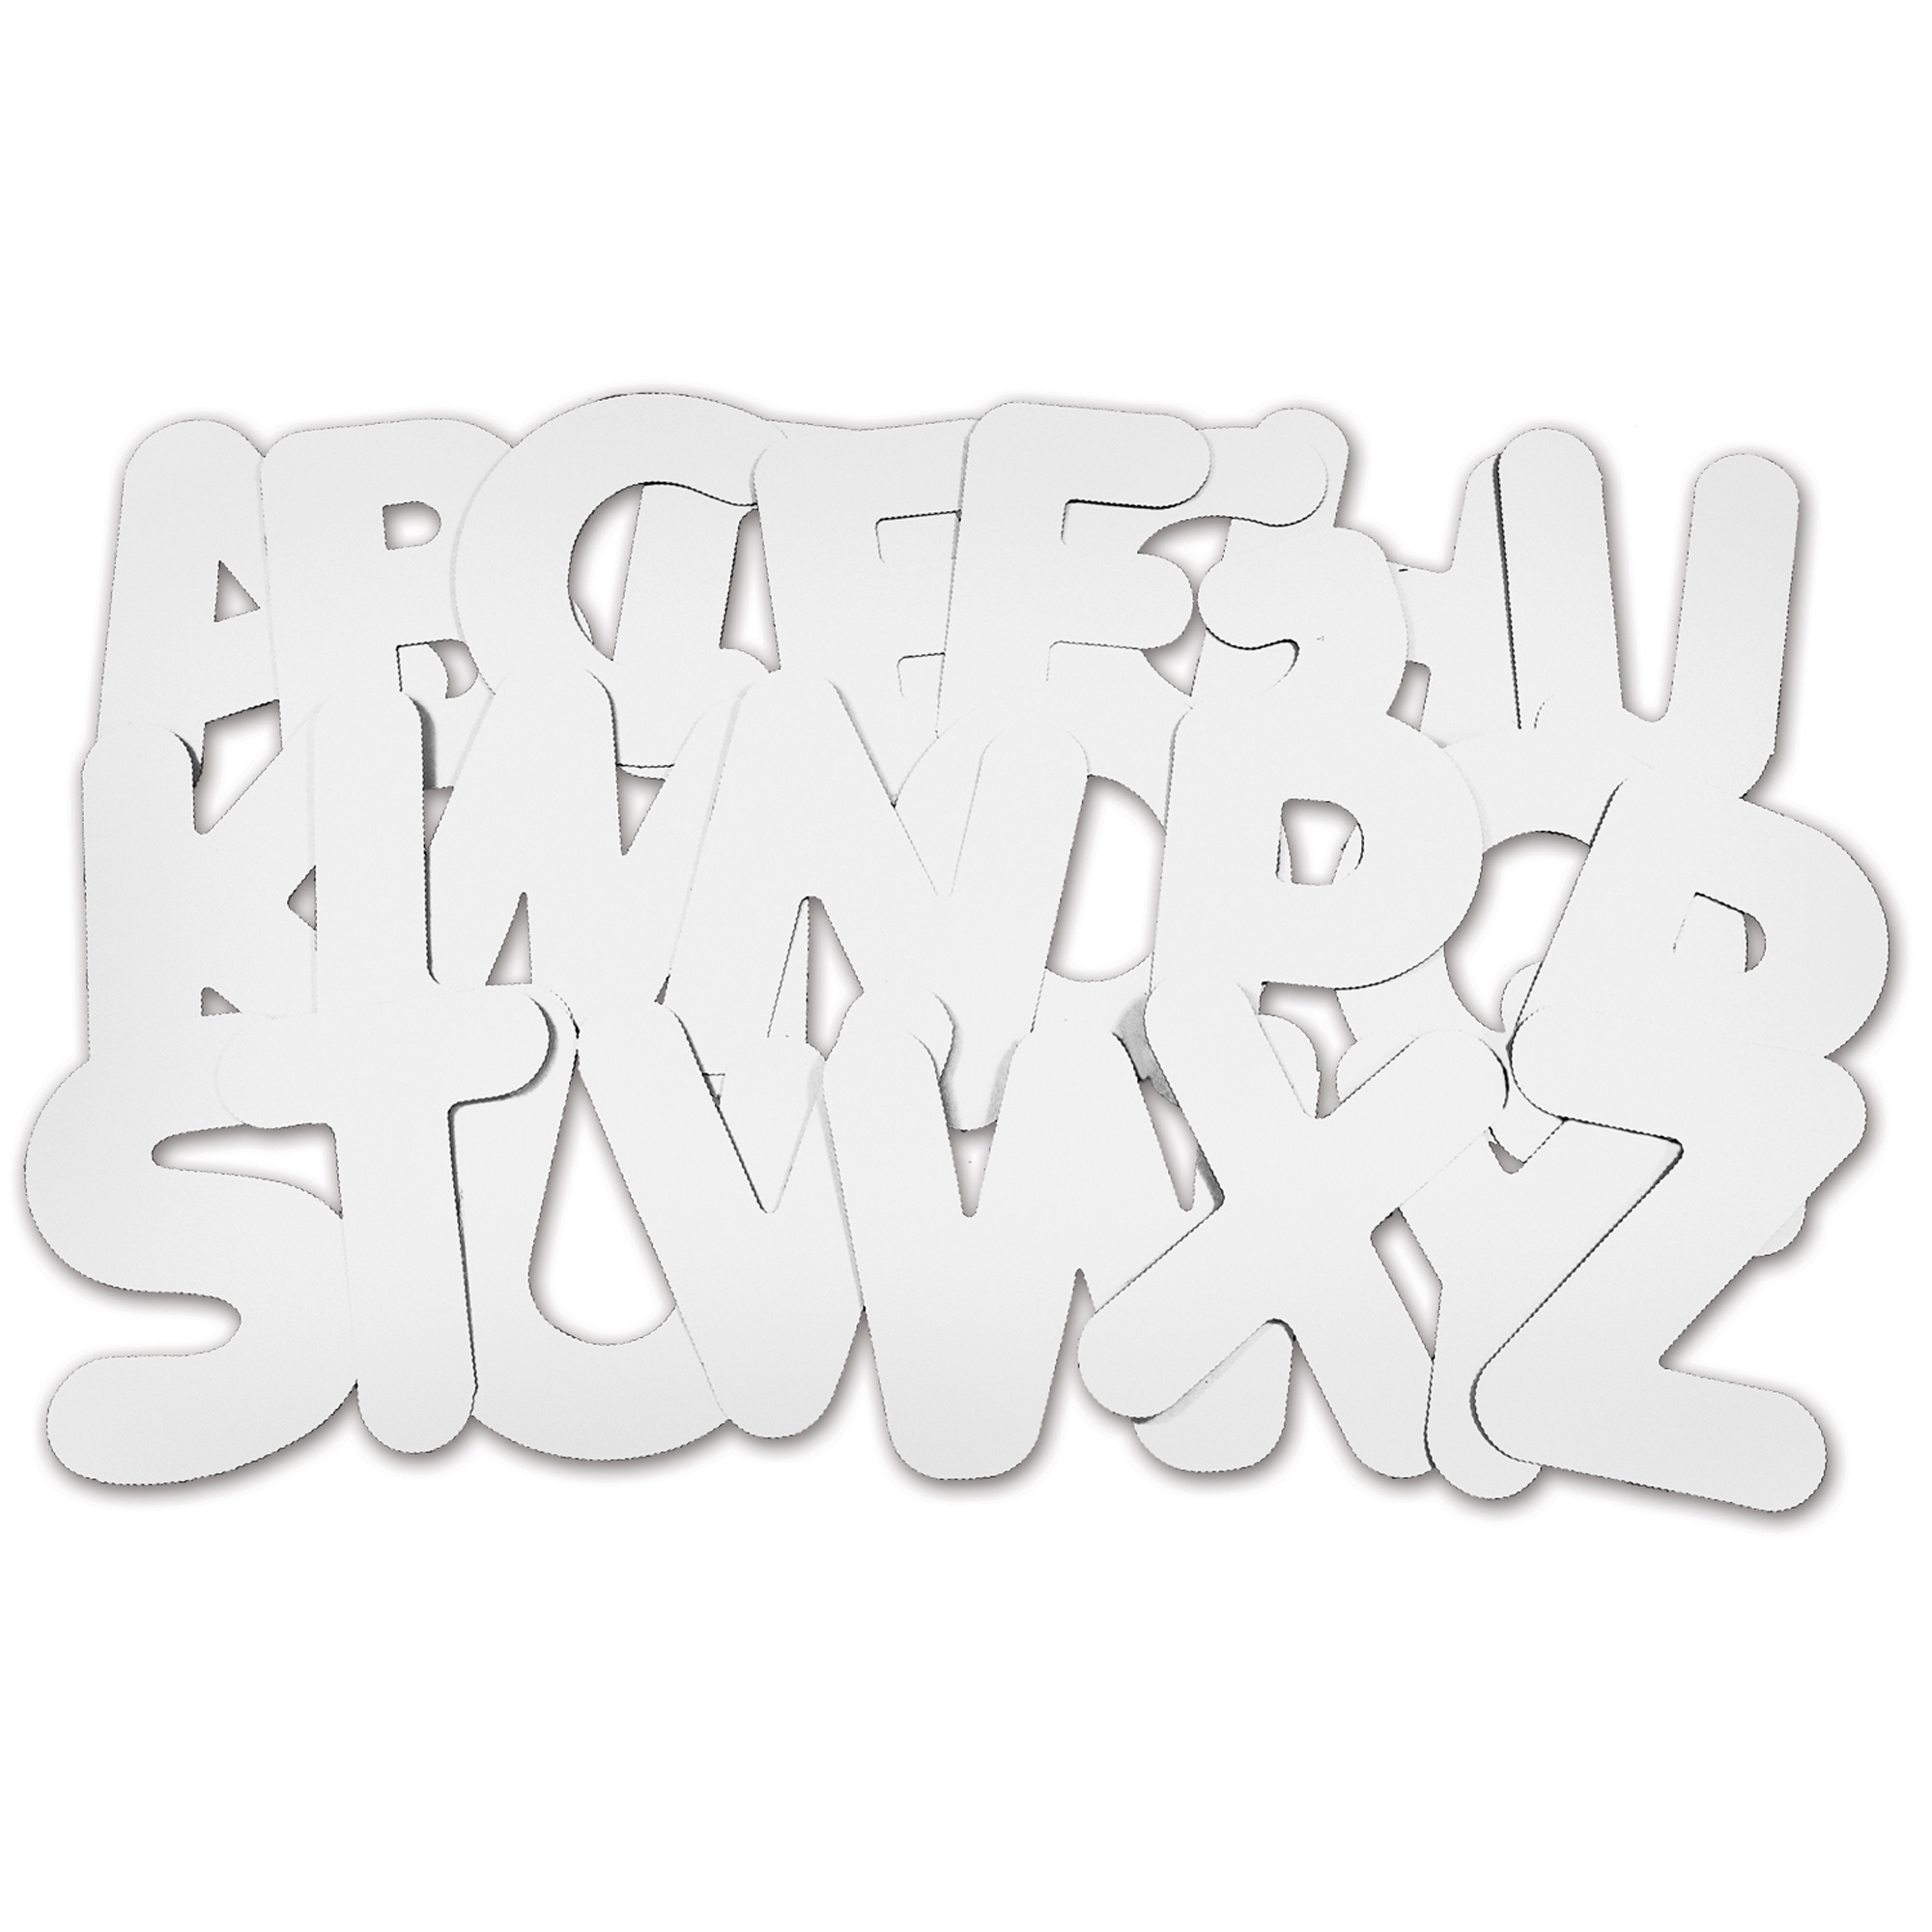 Roylco® Collage Letters, Uppercase